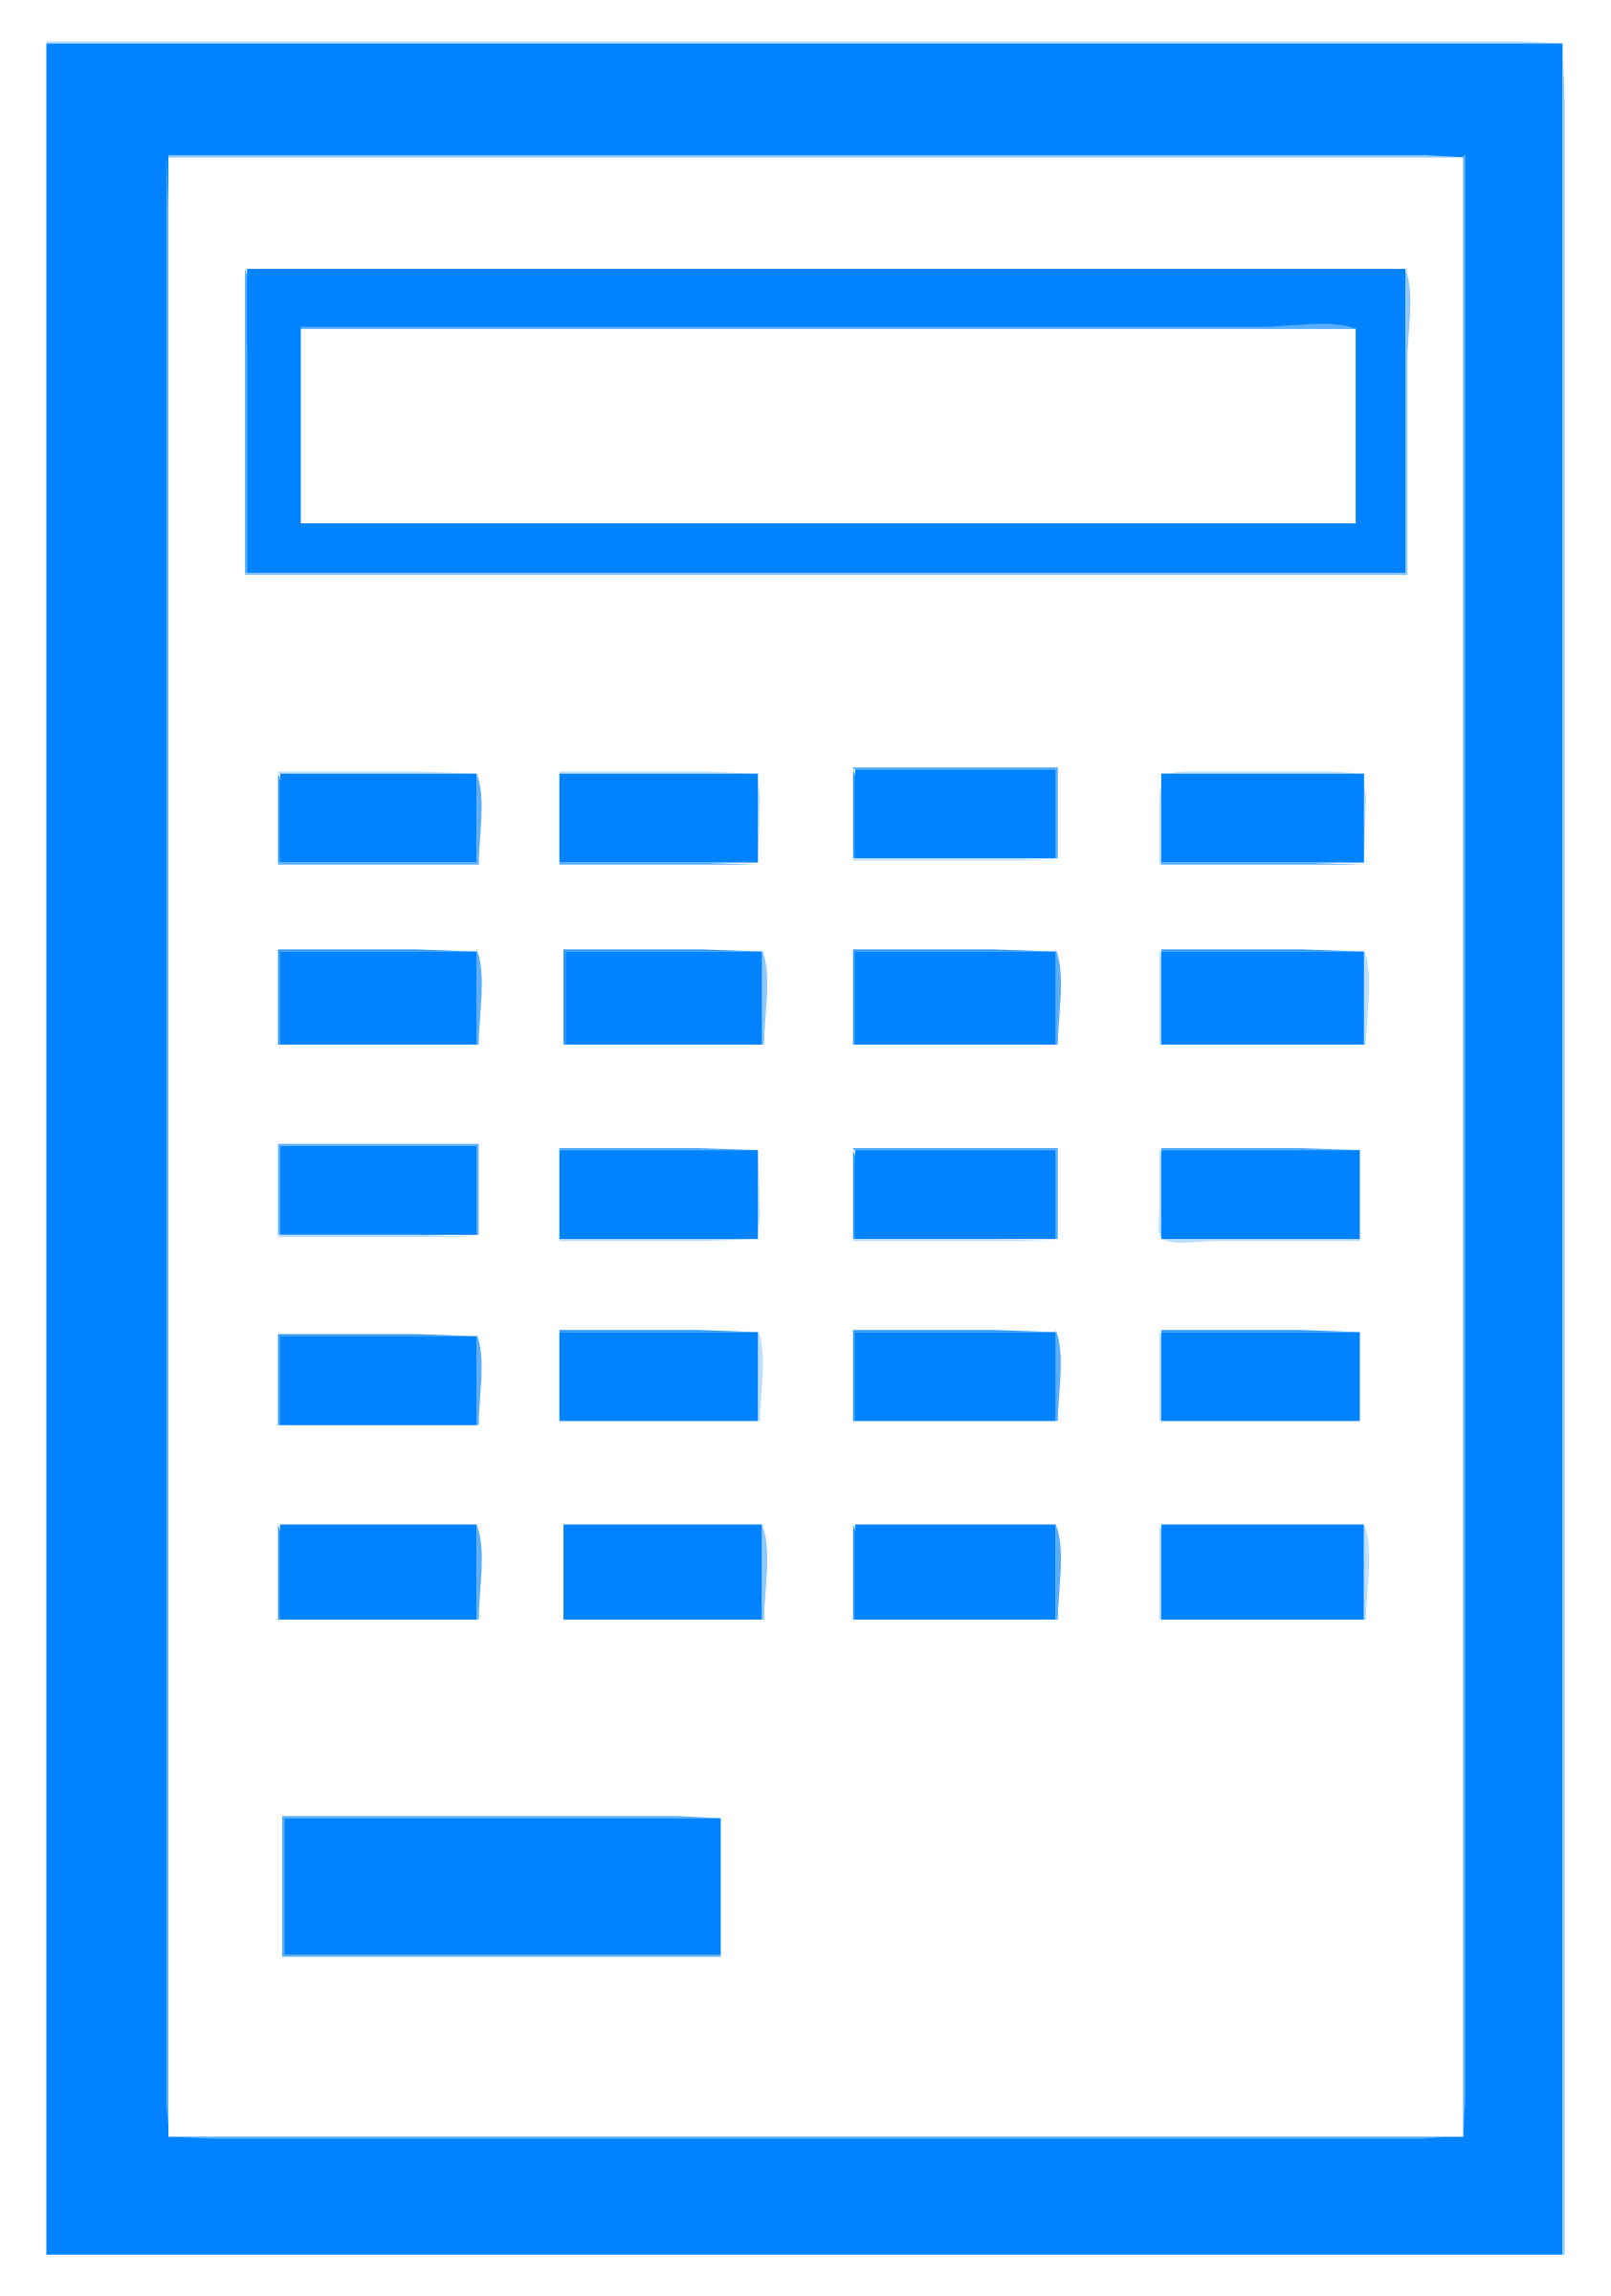 Icon big image png. Calculator clipart blue